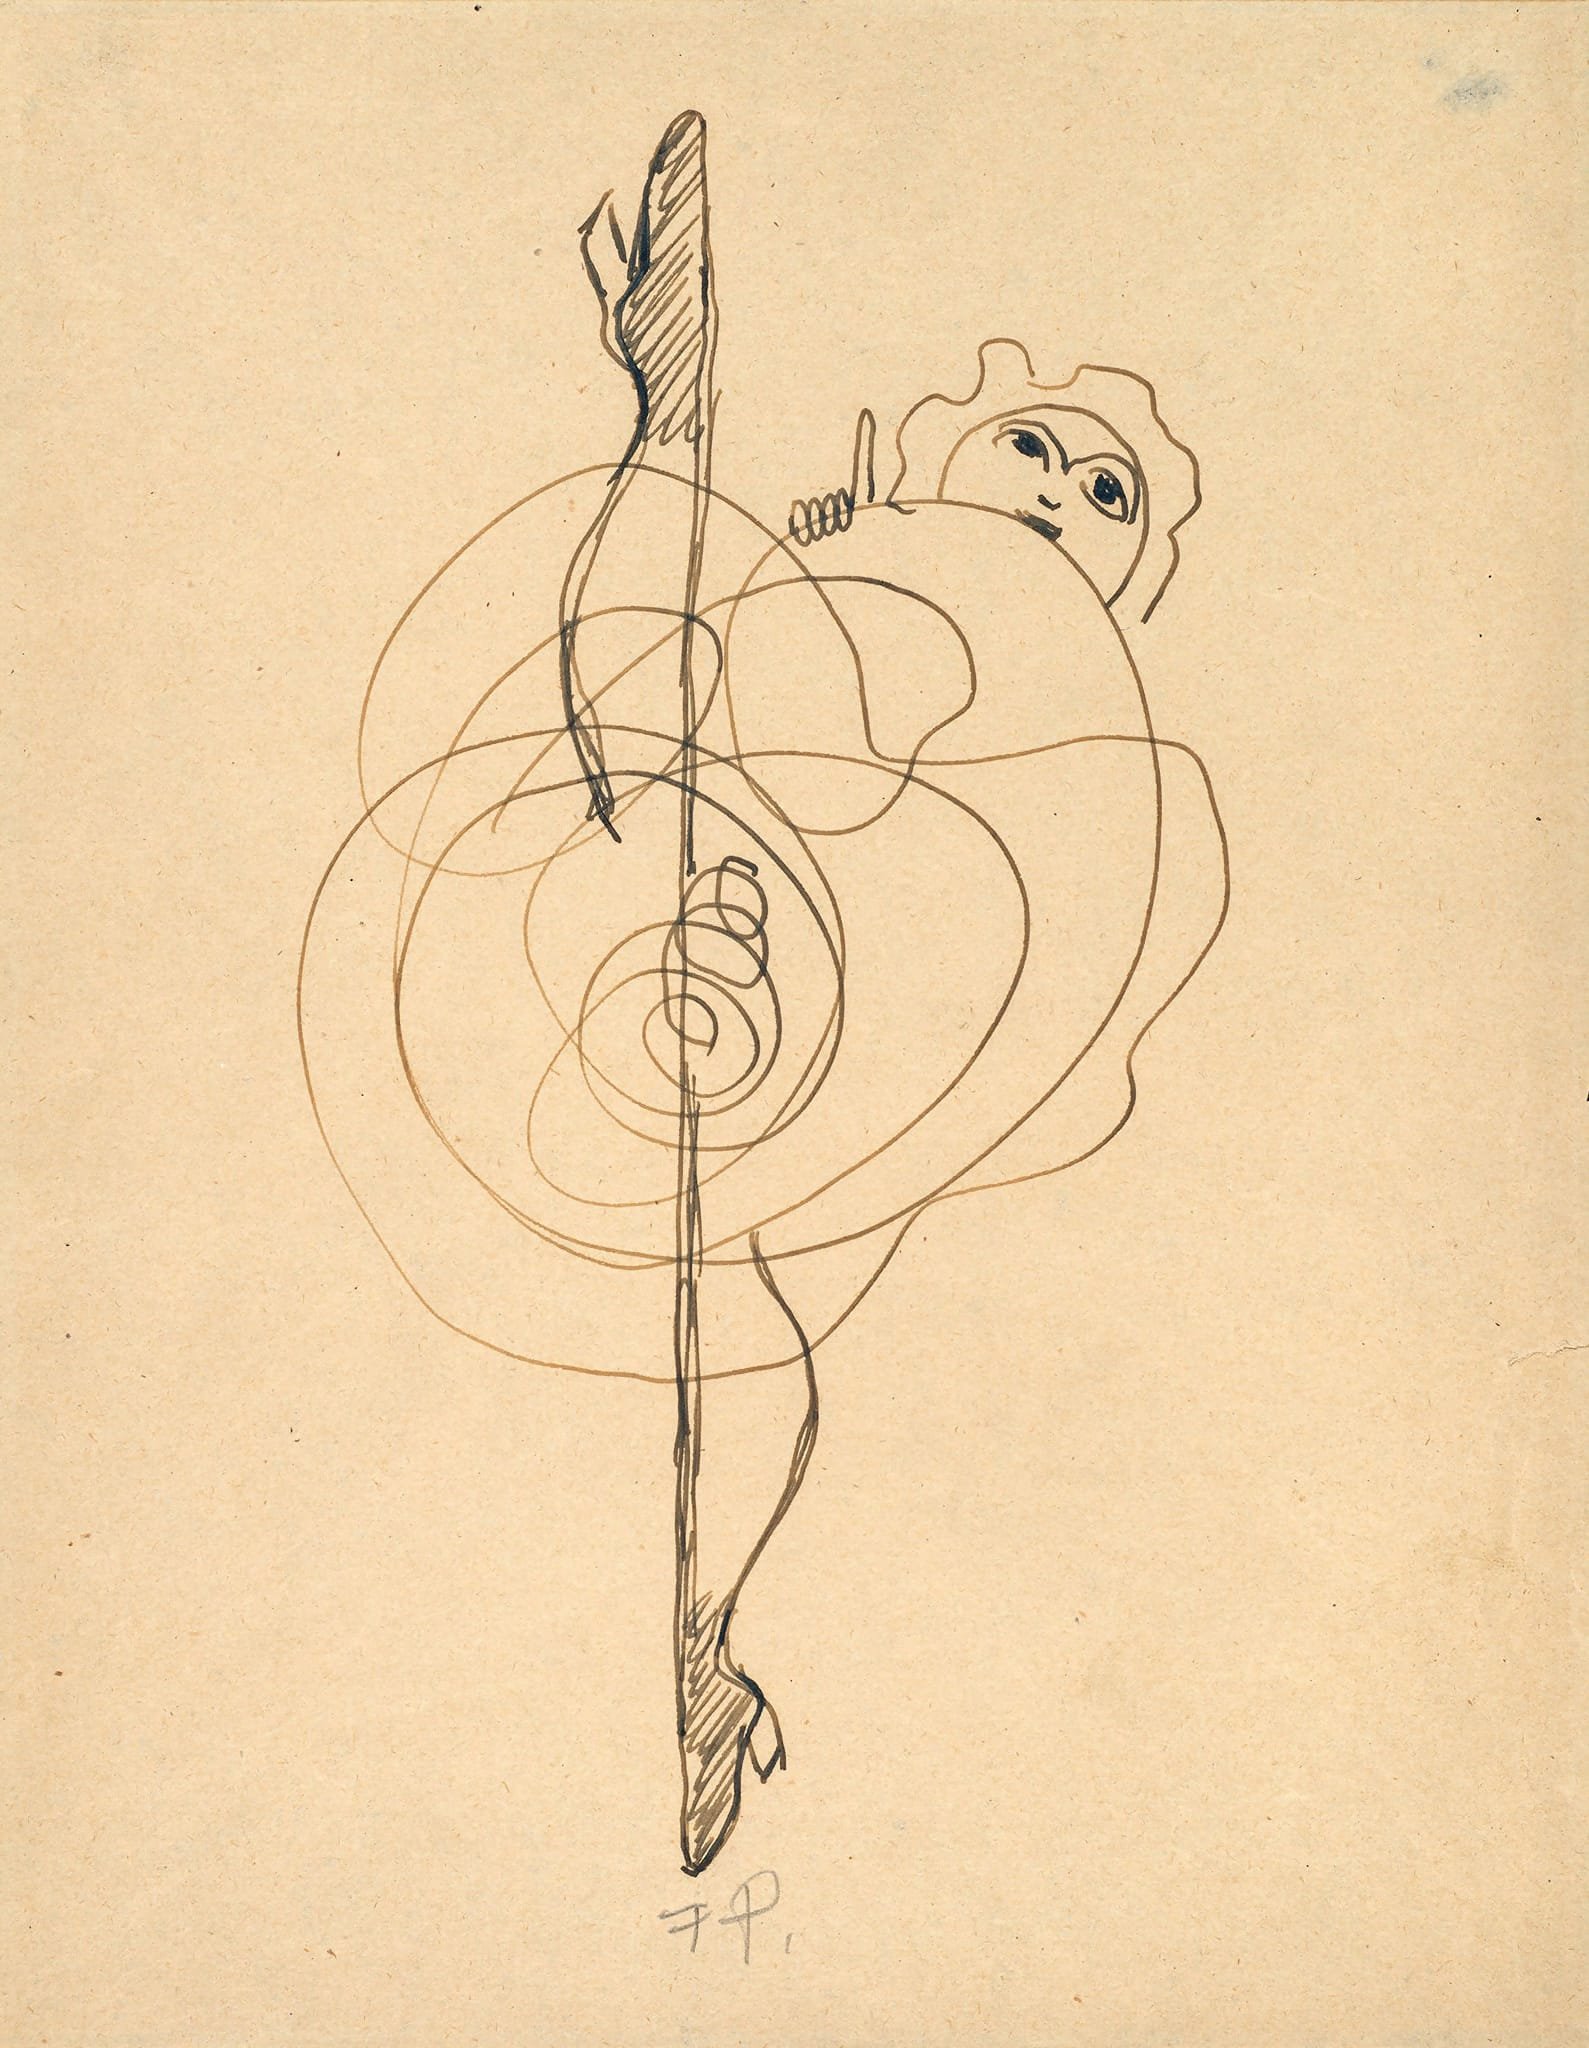 Untitled (Abstarct) by Francis Picabia